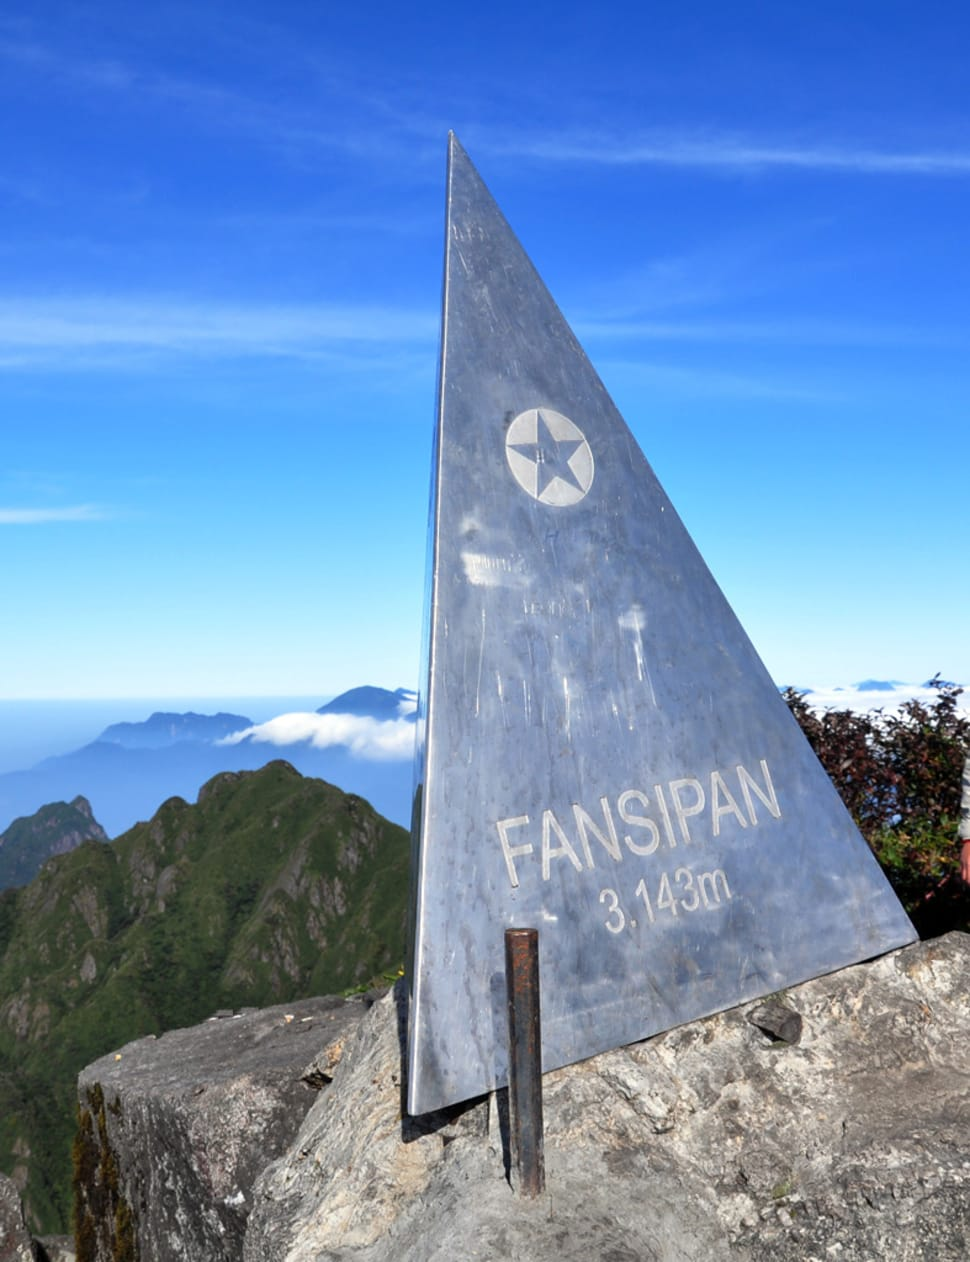 lxjp9avhc11gurkecwhn - Would you consider conquering the highest peak of Indochina?